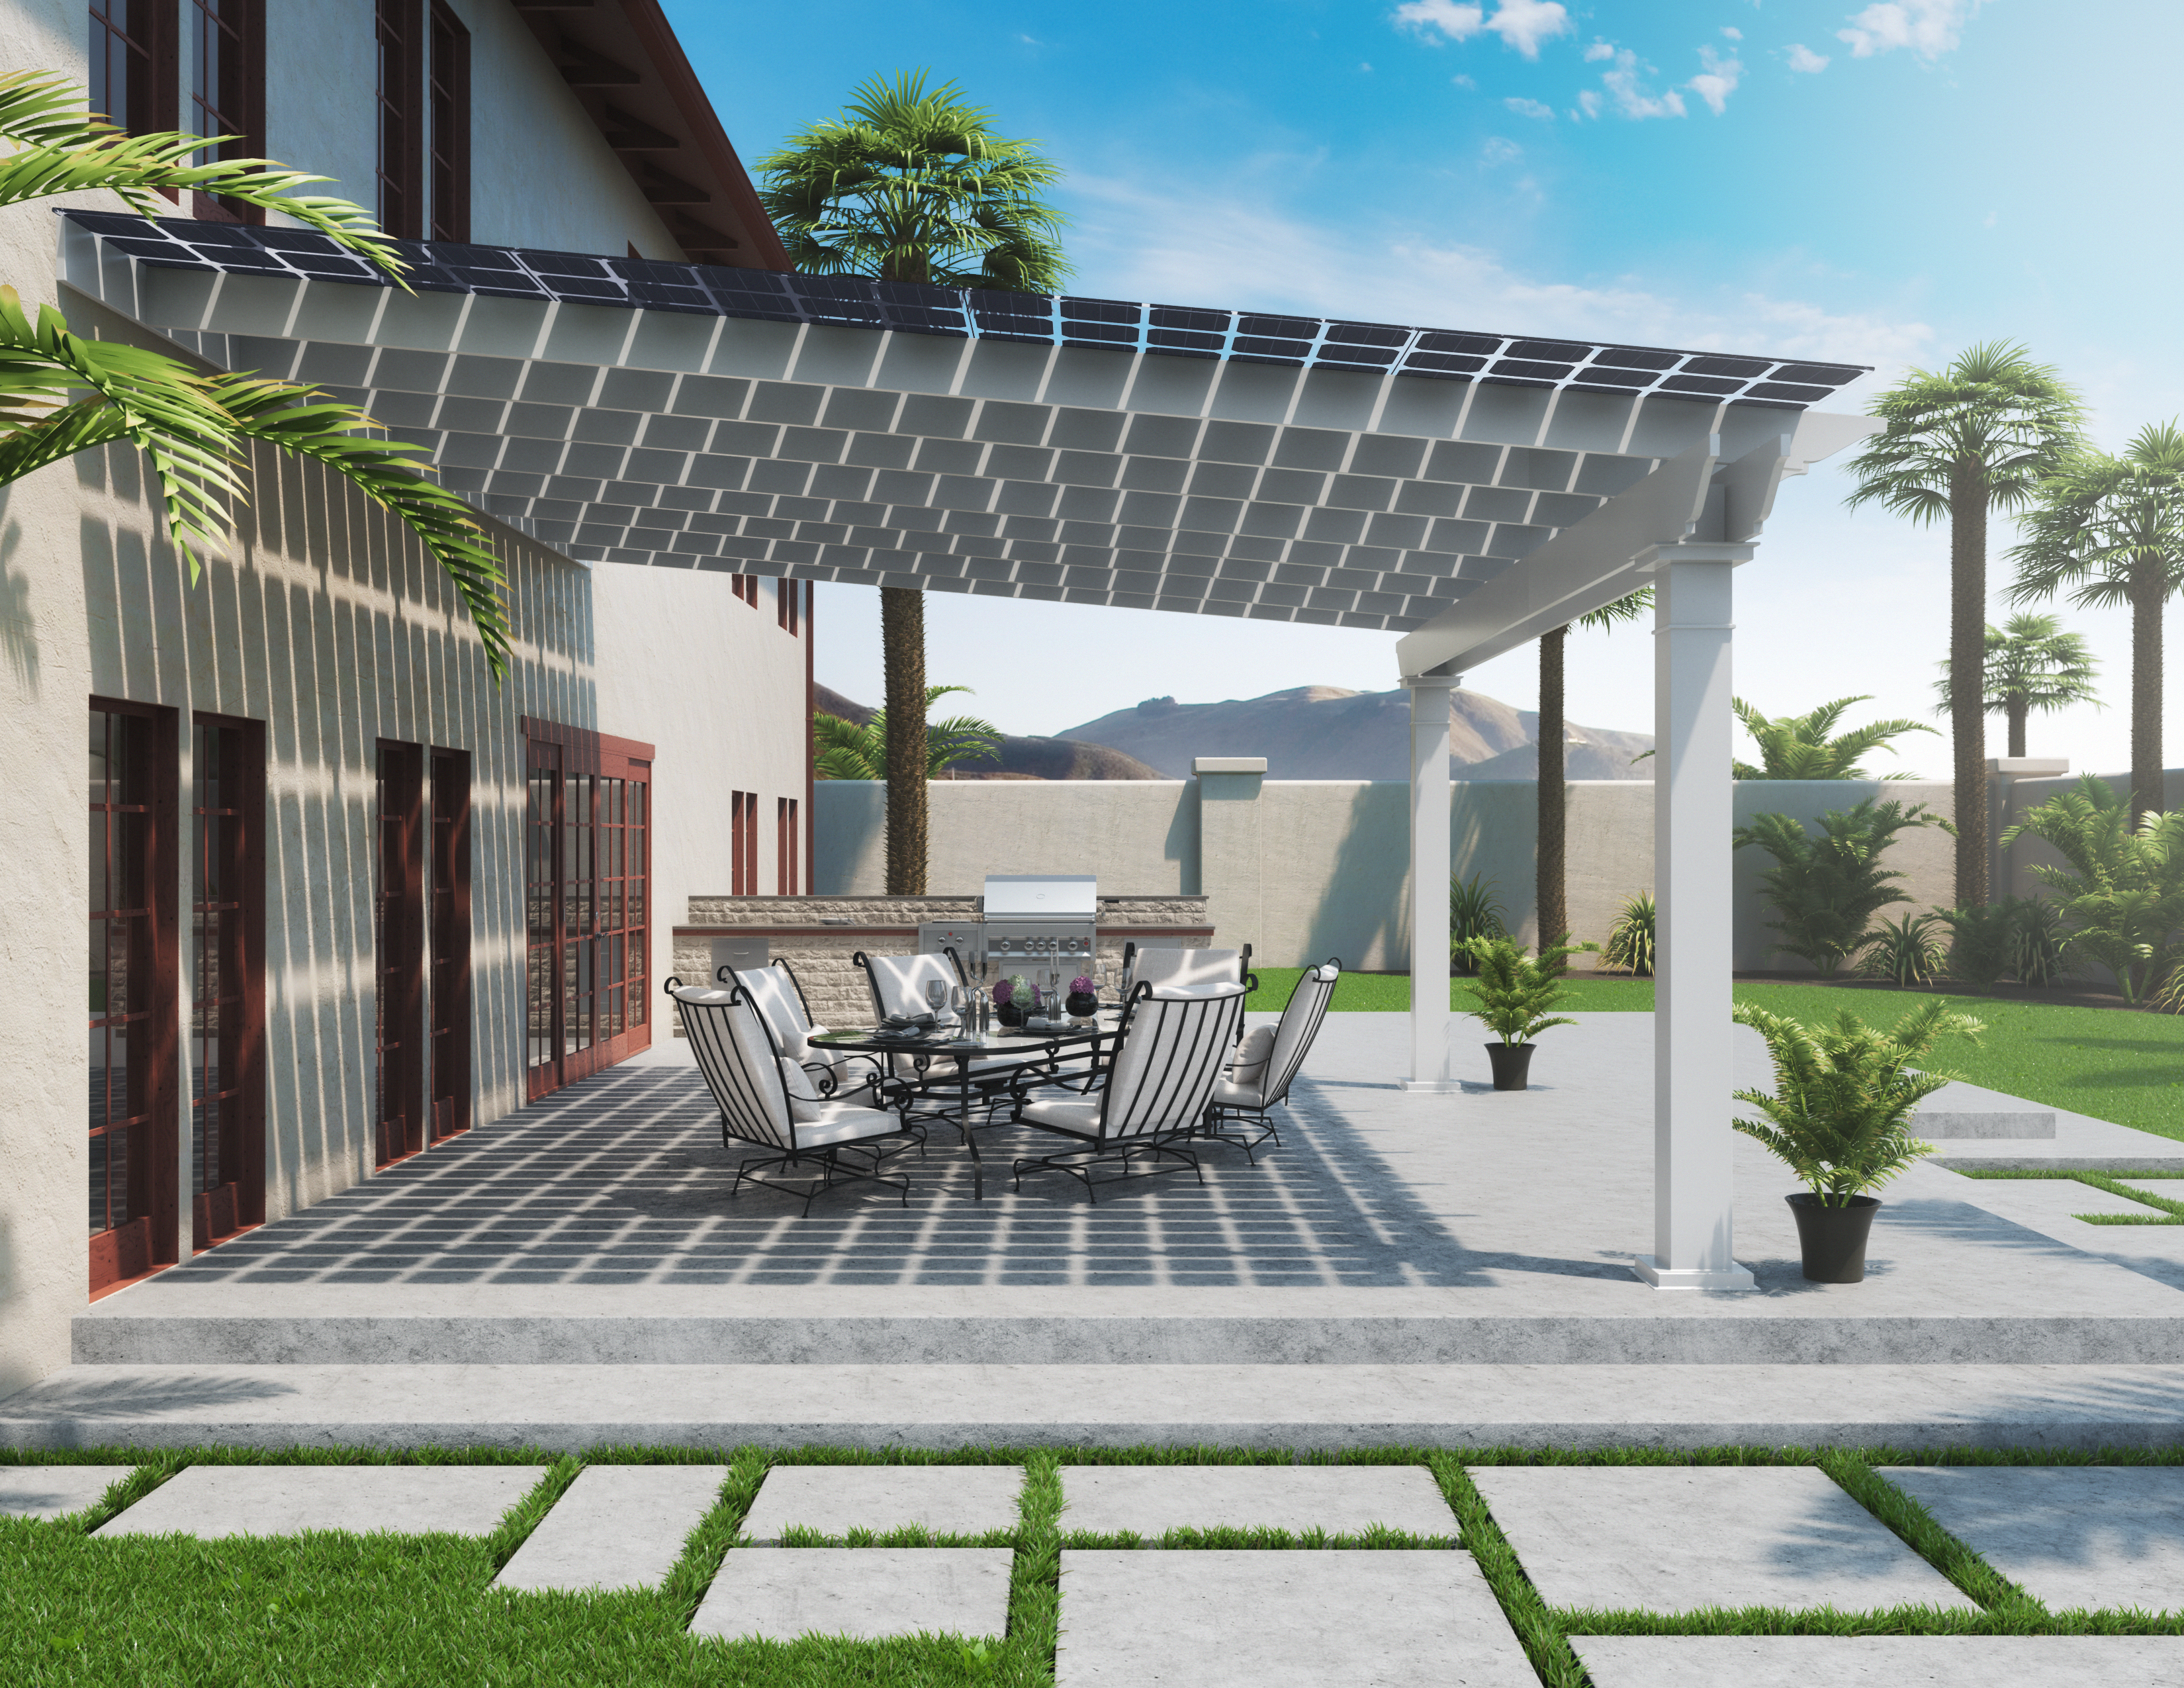 NRG Solar Haven outdoor patio with palm trees